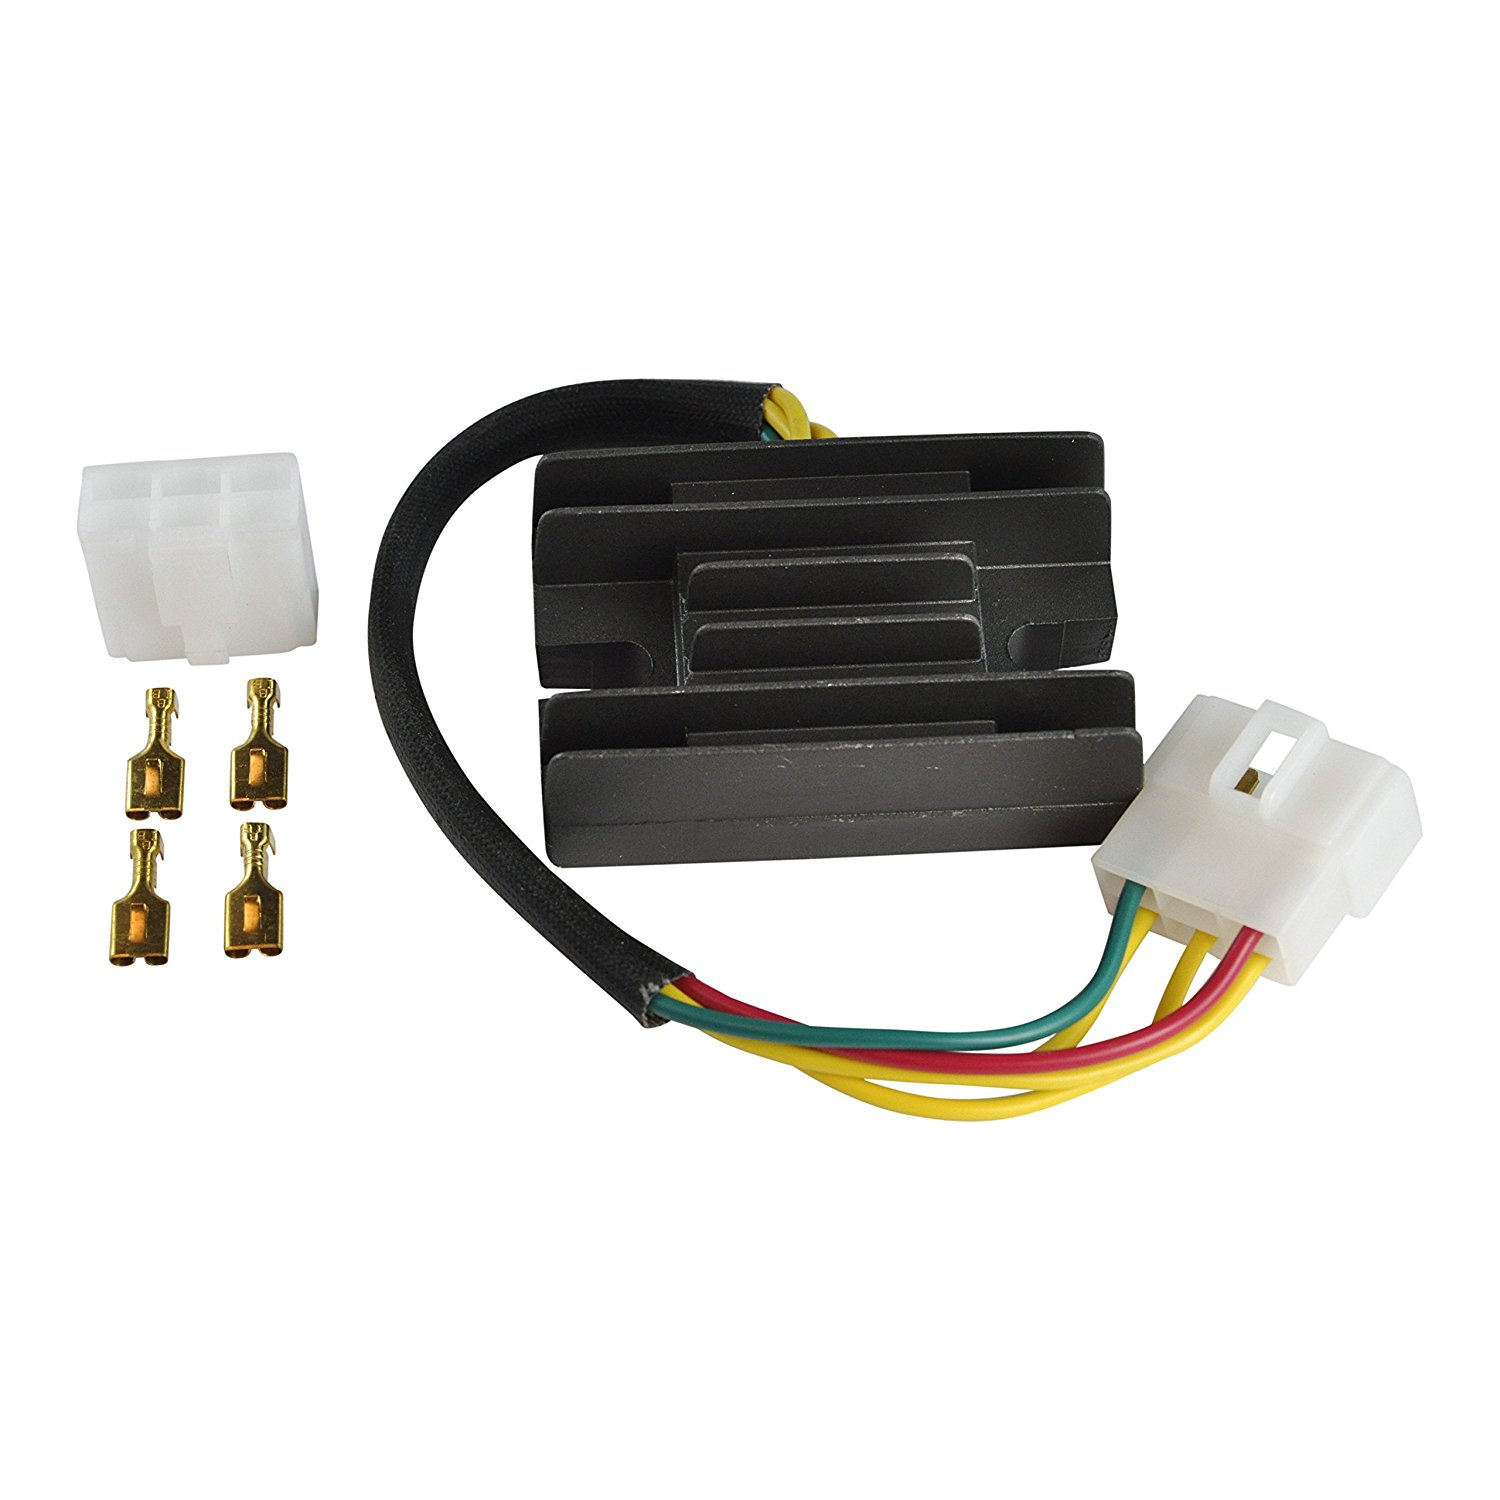 Voltage Regulator Rectifier For Suzuki LT LTF 160 250 Quardrunner 300  KingQuad DR 200 SE 1989